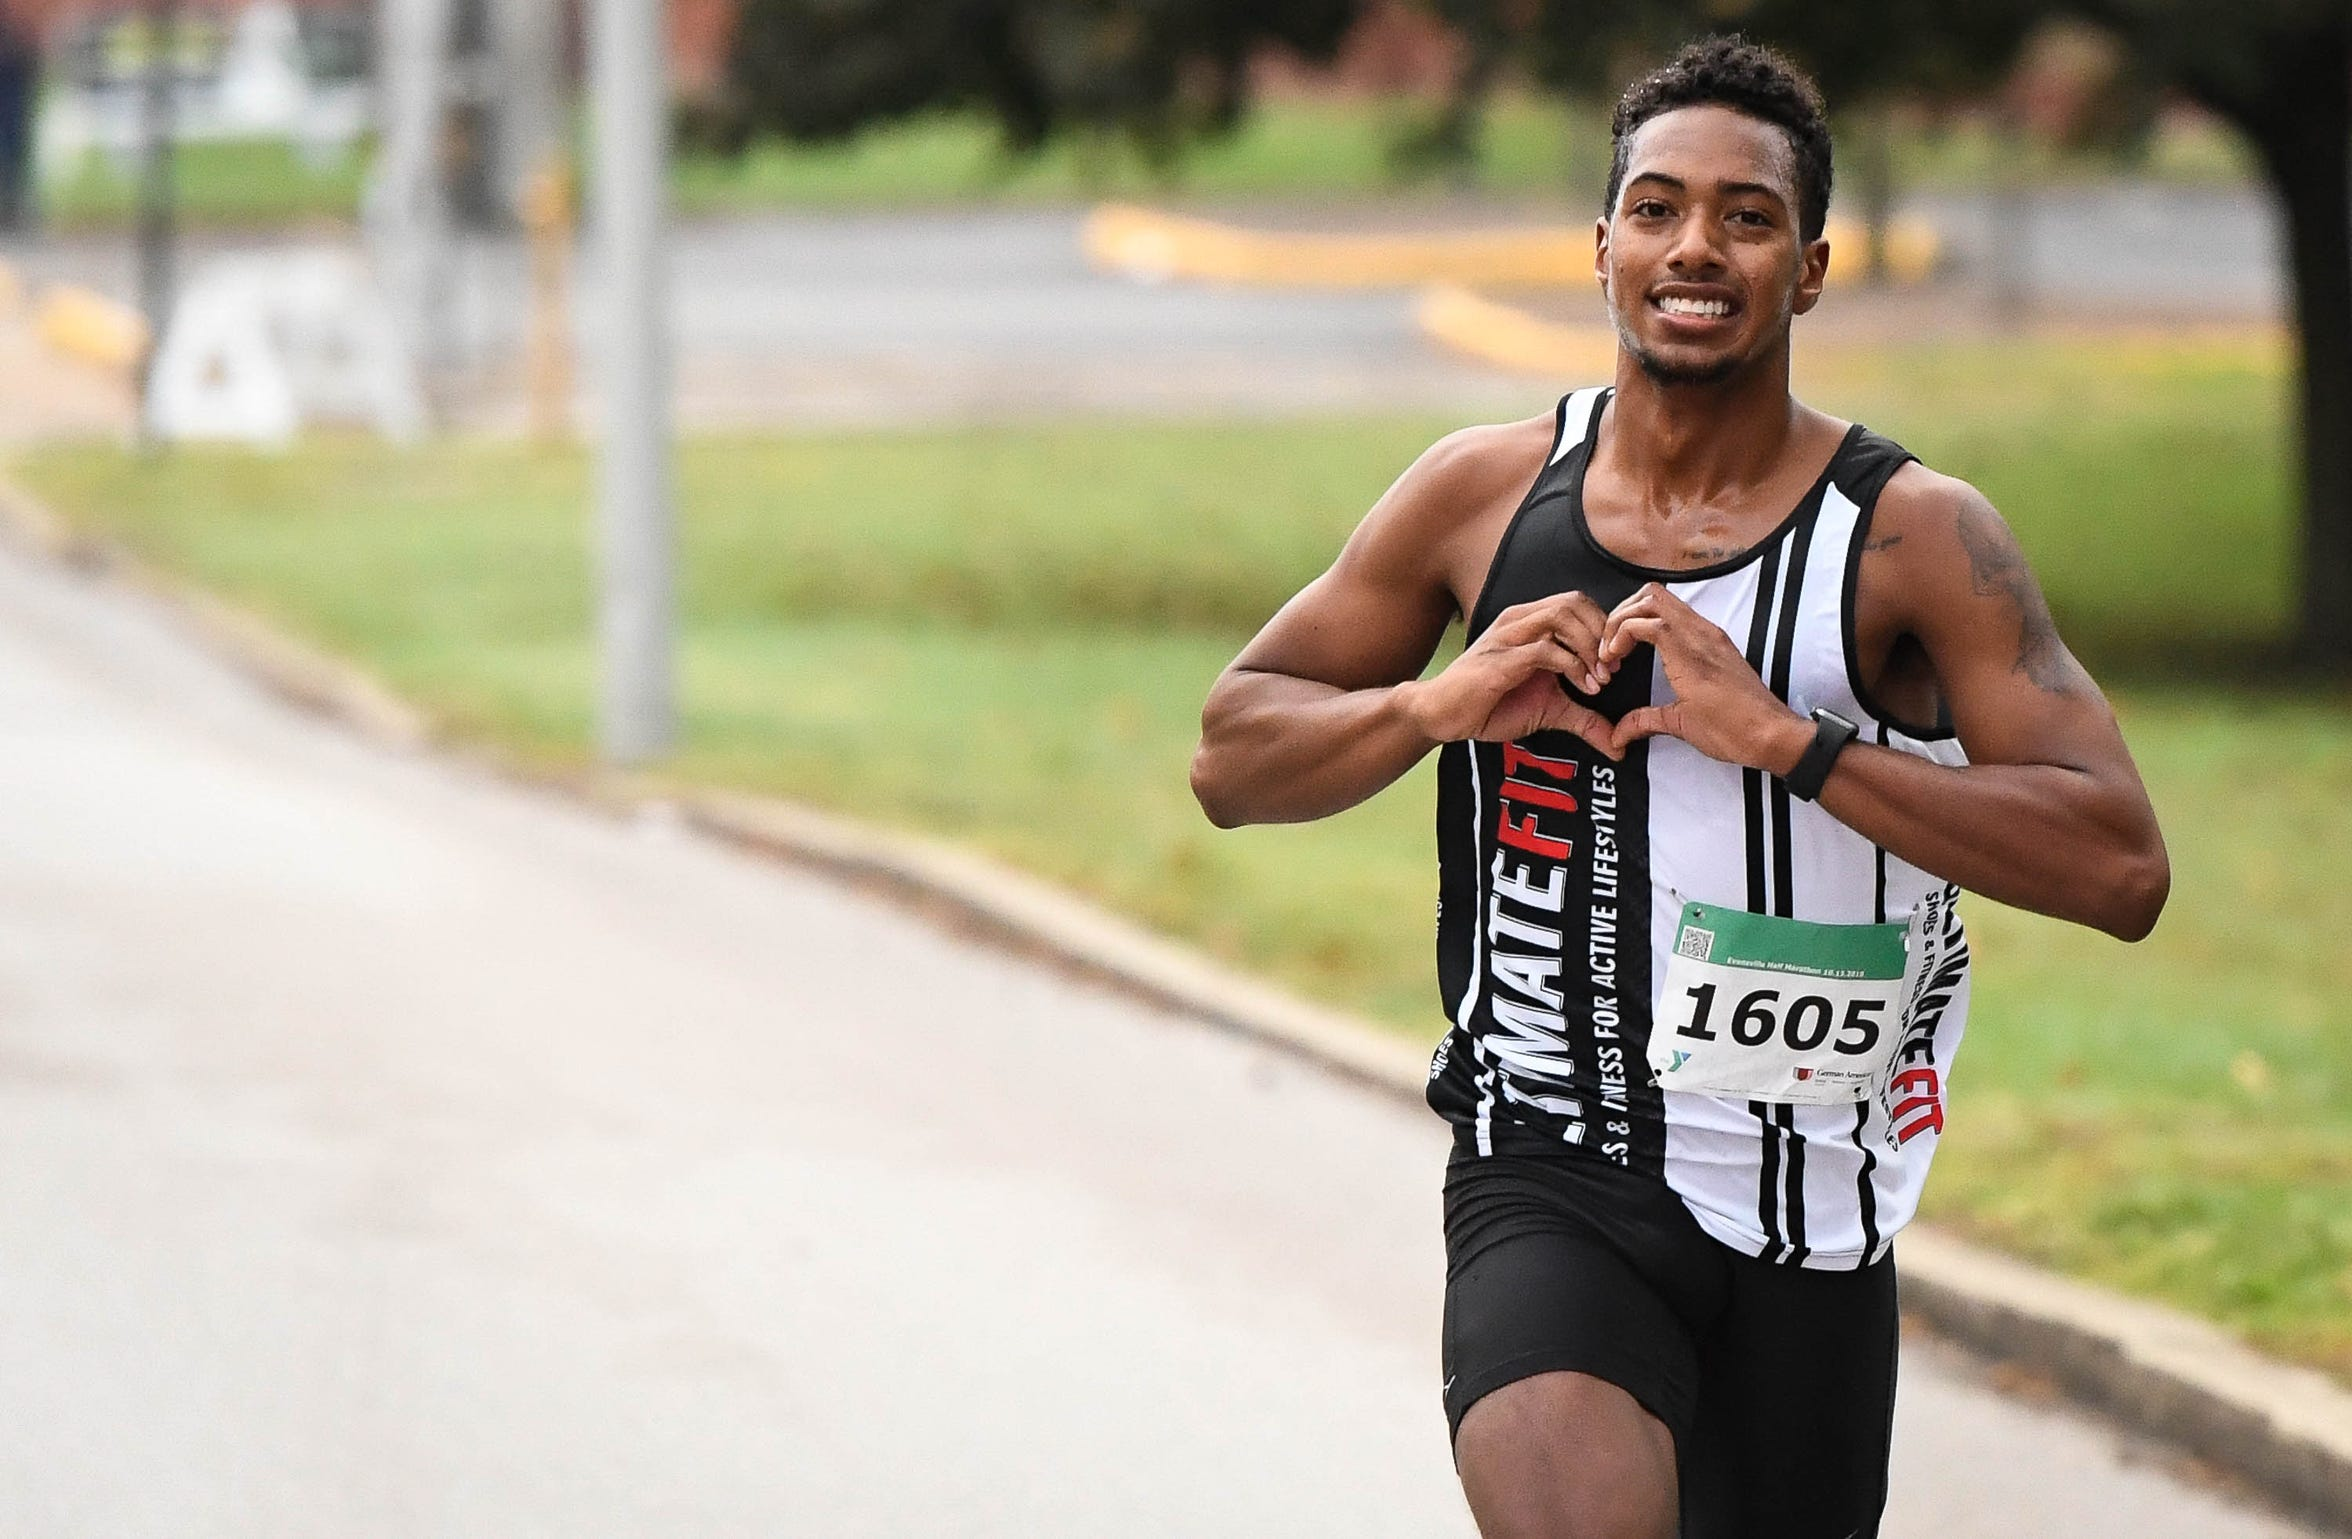 Race winner Darin Lawrence, Evansville, runs past Garvin Park on his way to a time of 1:10:06 at the the Evansville Half Marathon Saturday morning, October 13, 2018.